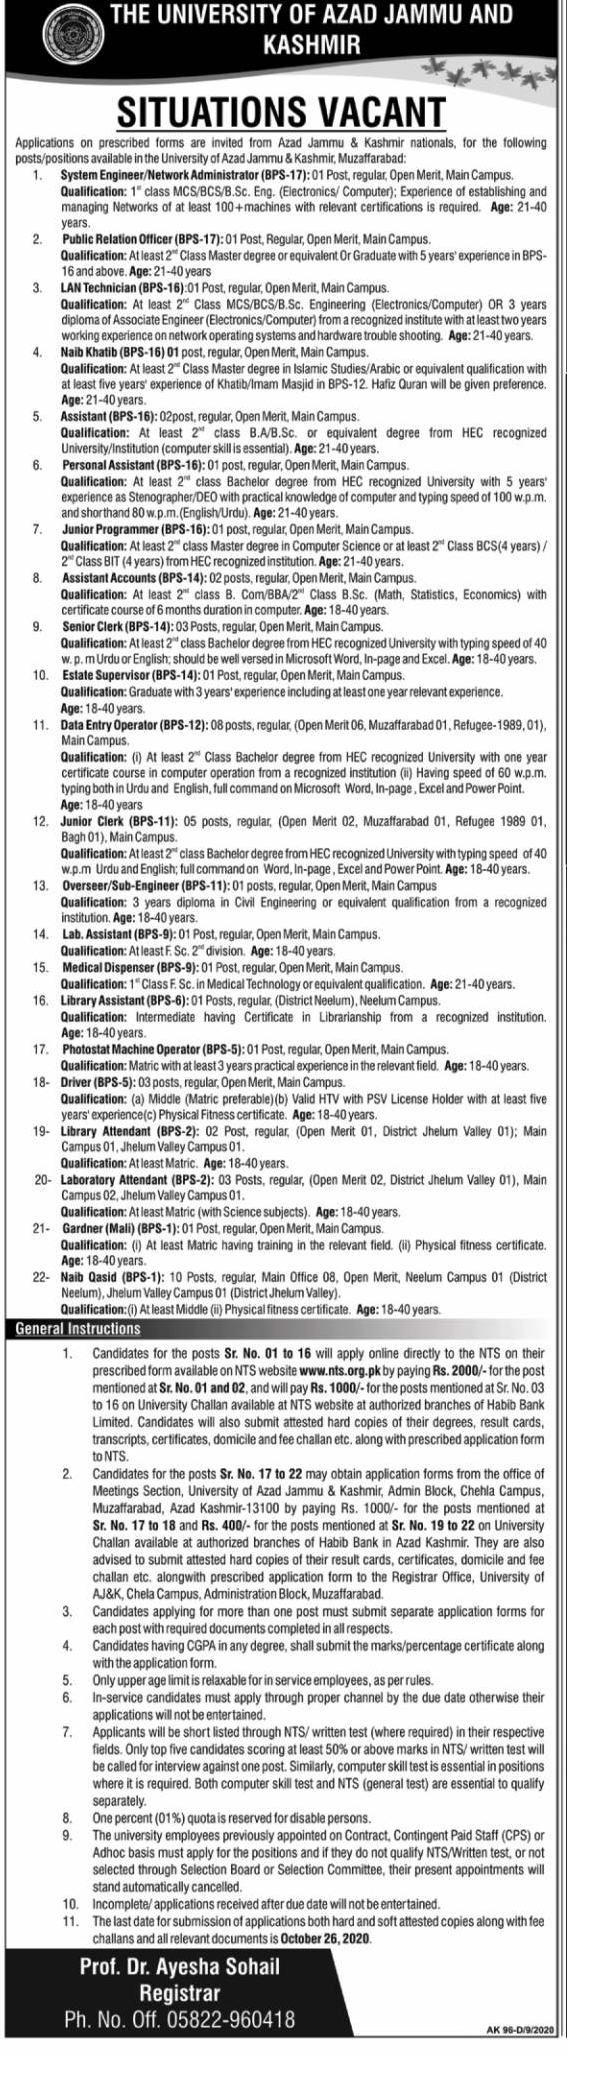 University of Azad Jammu & Kashmir Jobs September 2020 (447 Posts)